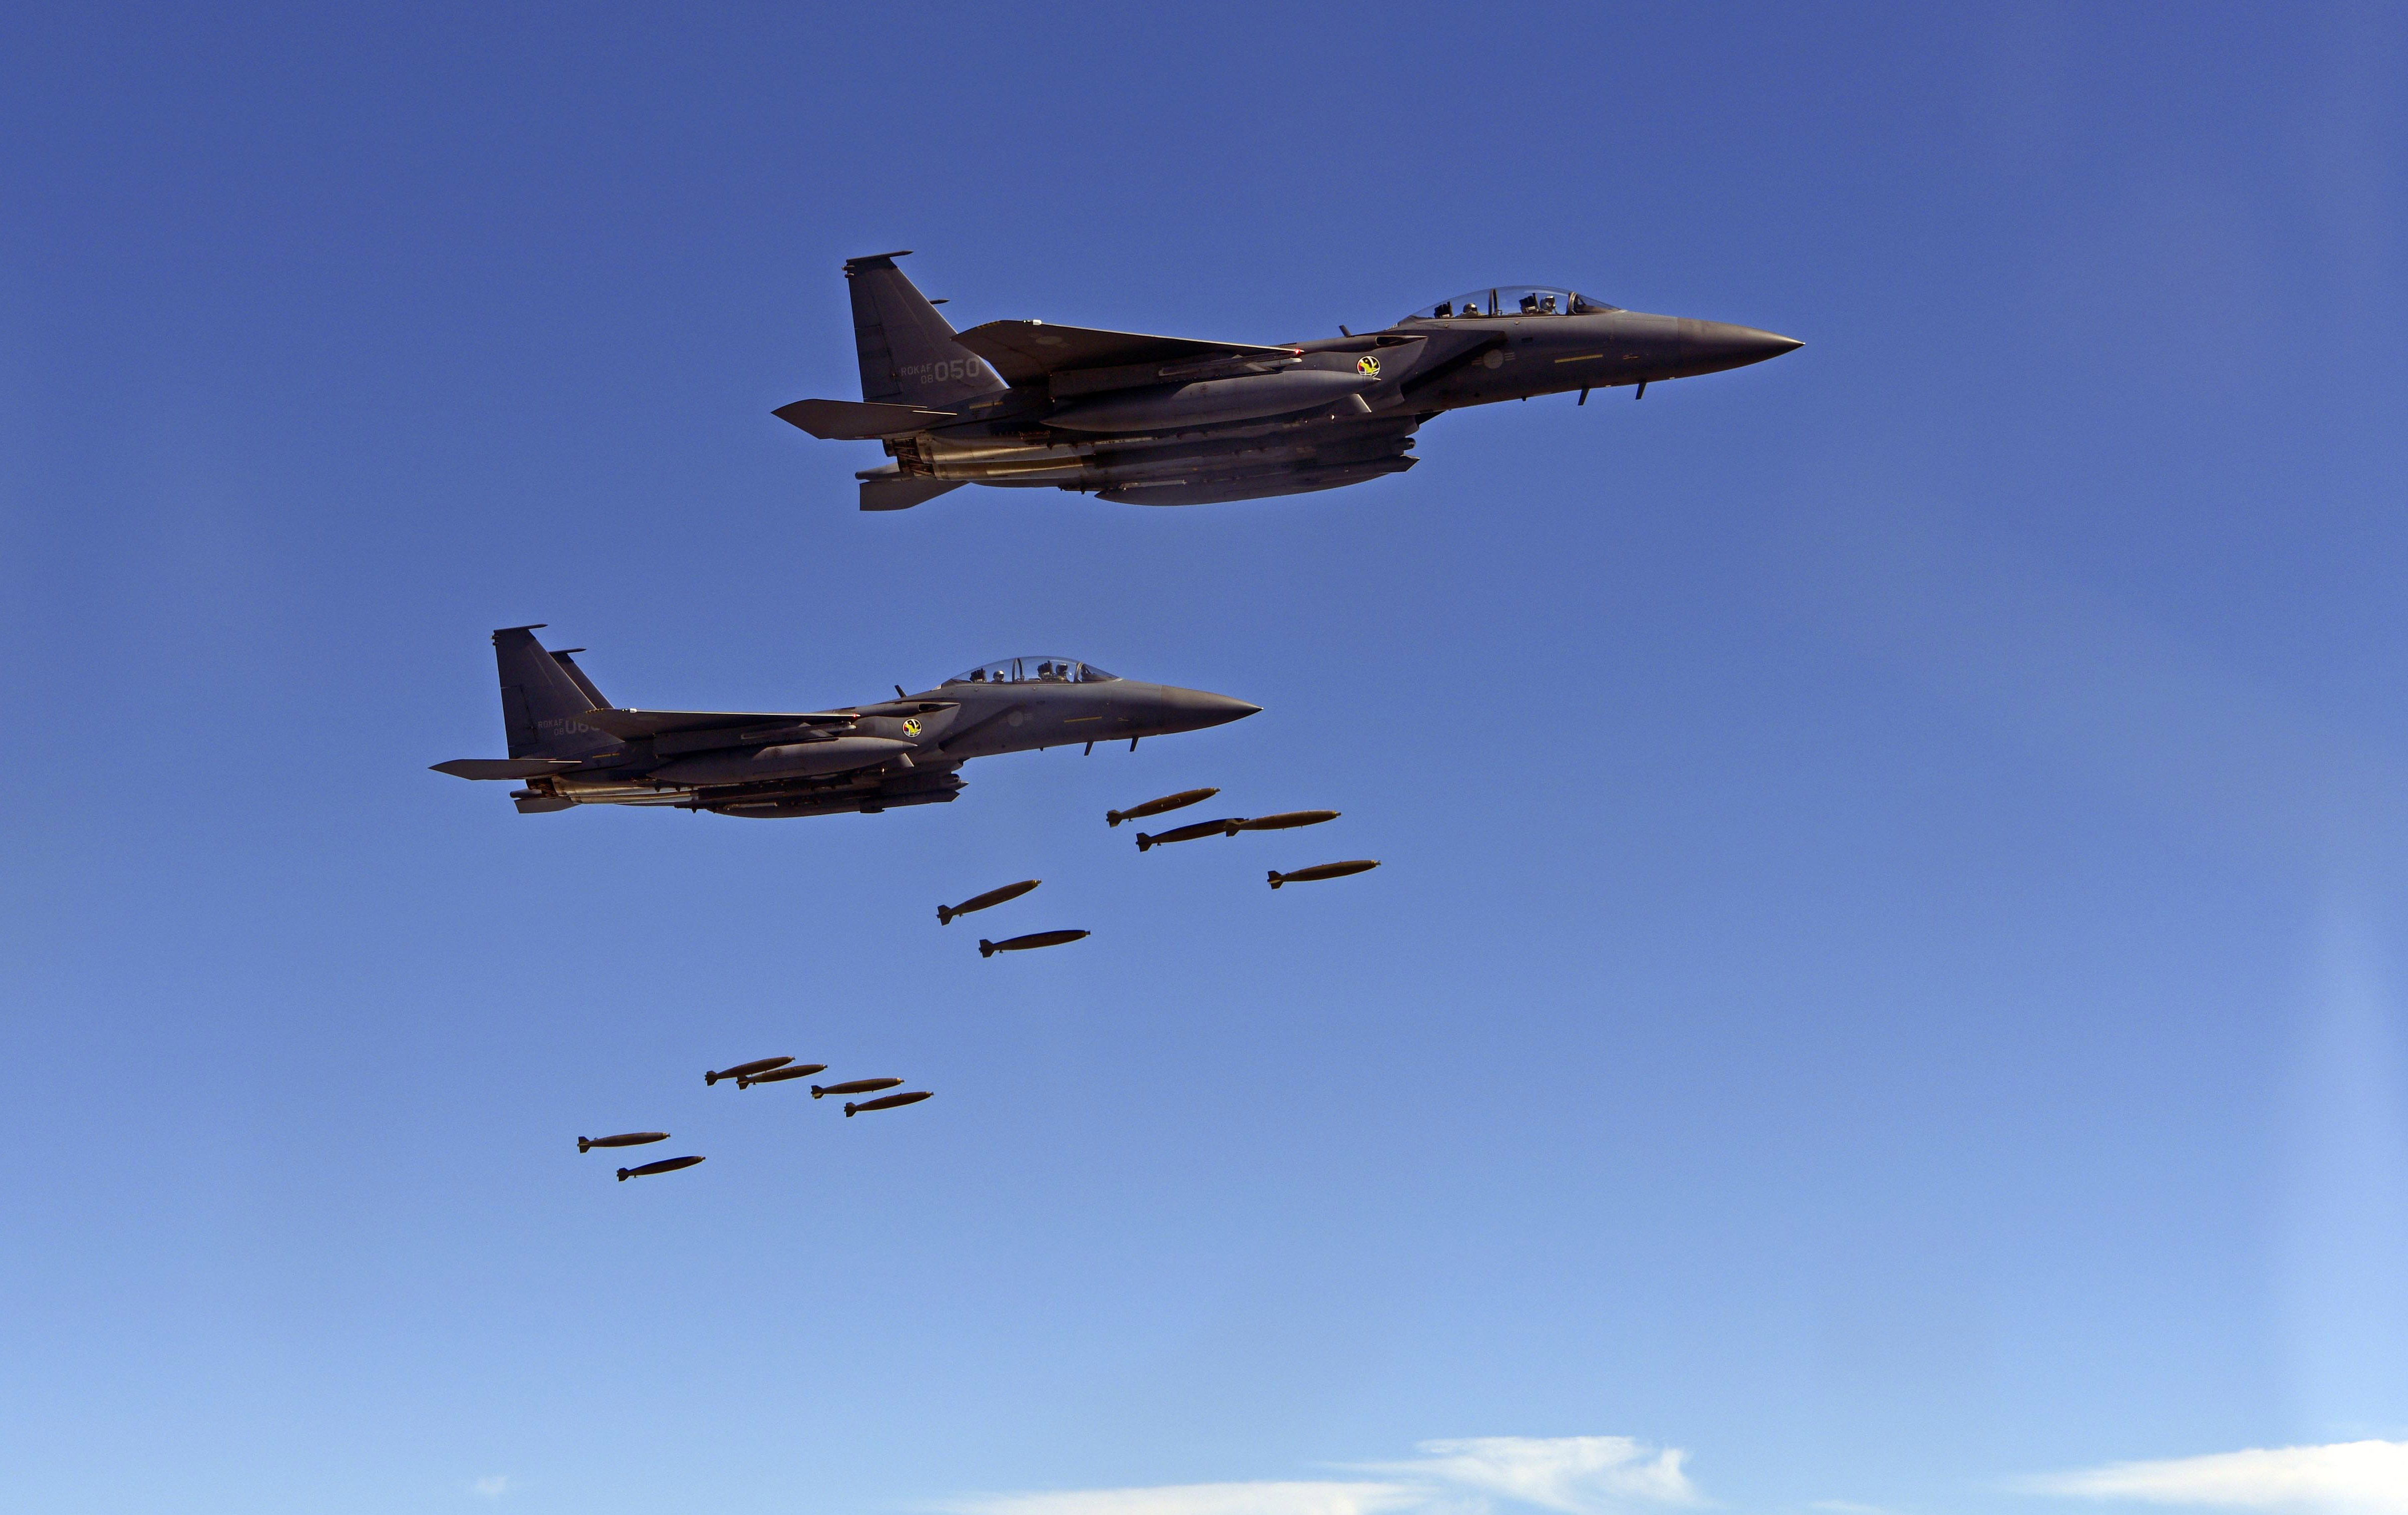 South Korean F-15K fighters drop munitions over Pilsung Range during operations alongside U.S. F-35B stealth fighters and B-1B Lancer bombers. South Korea Defense Ministry via AP)